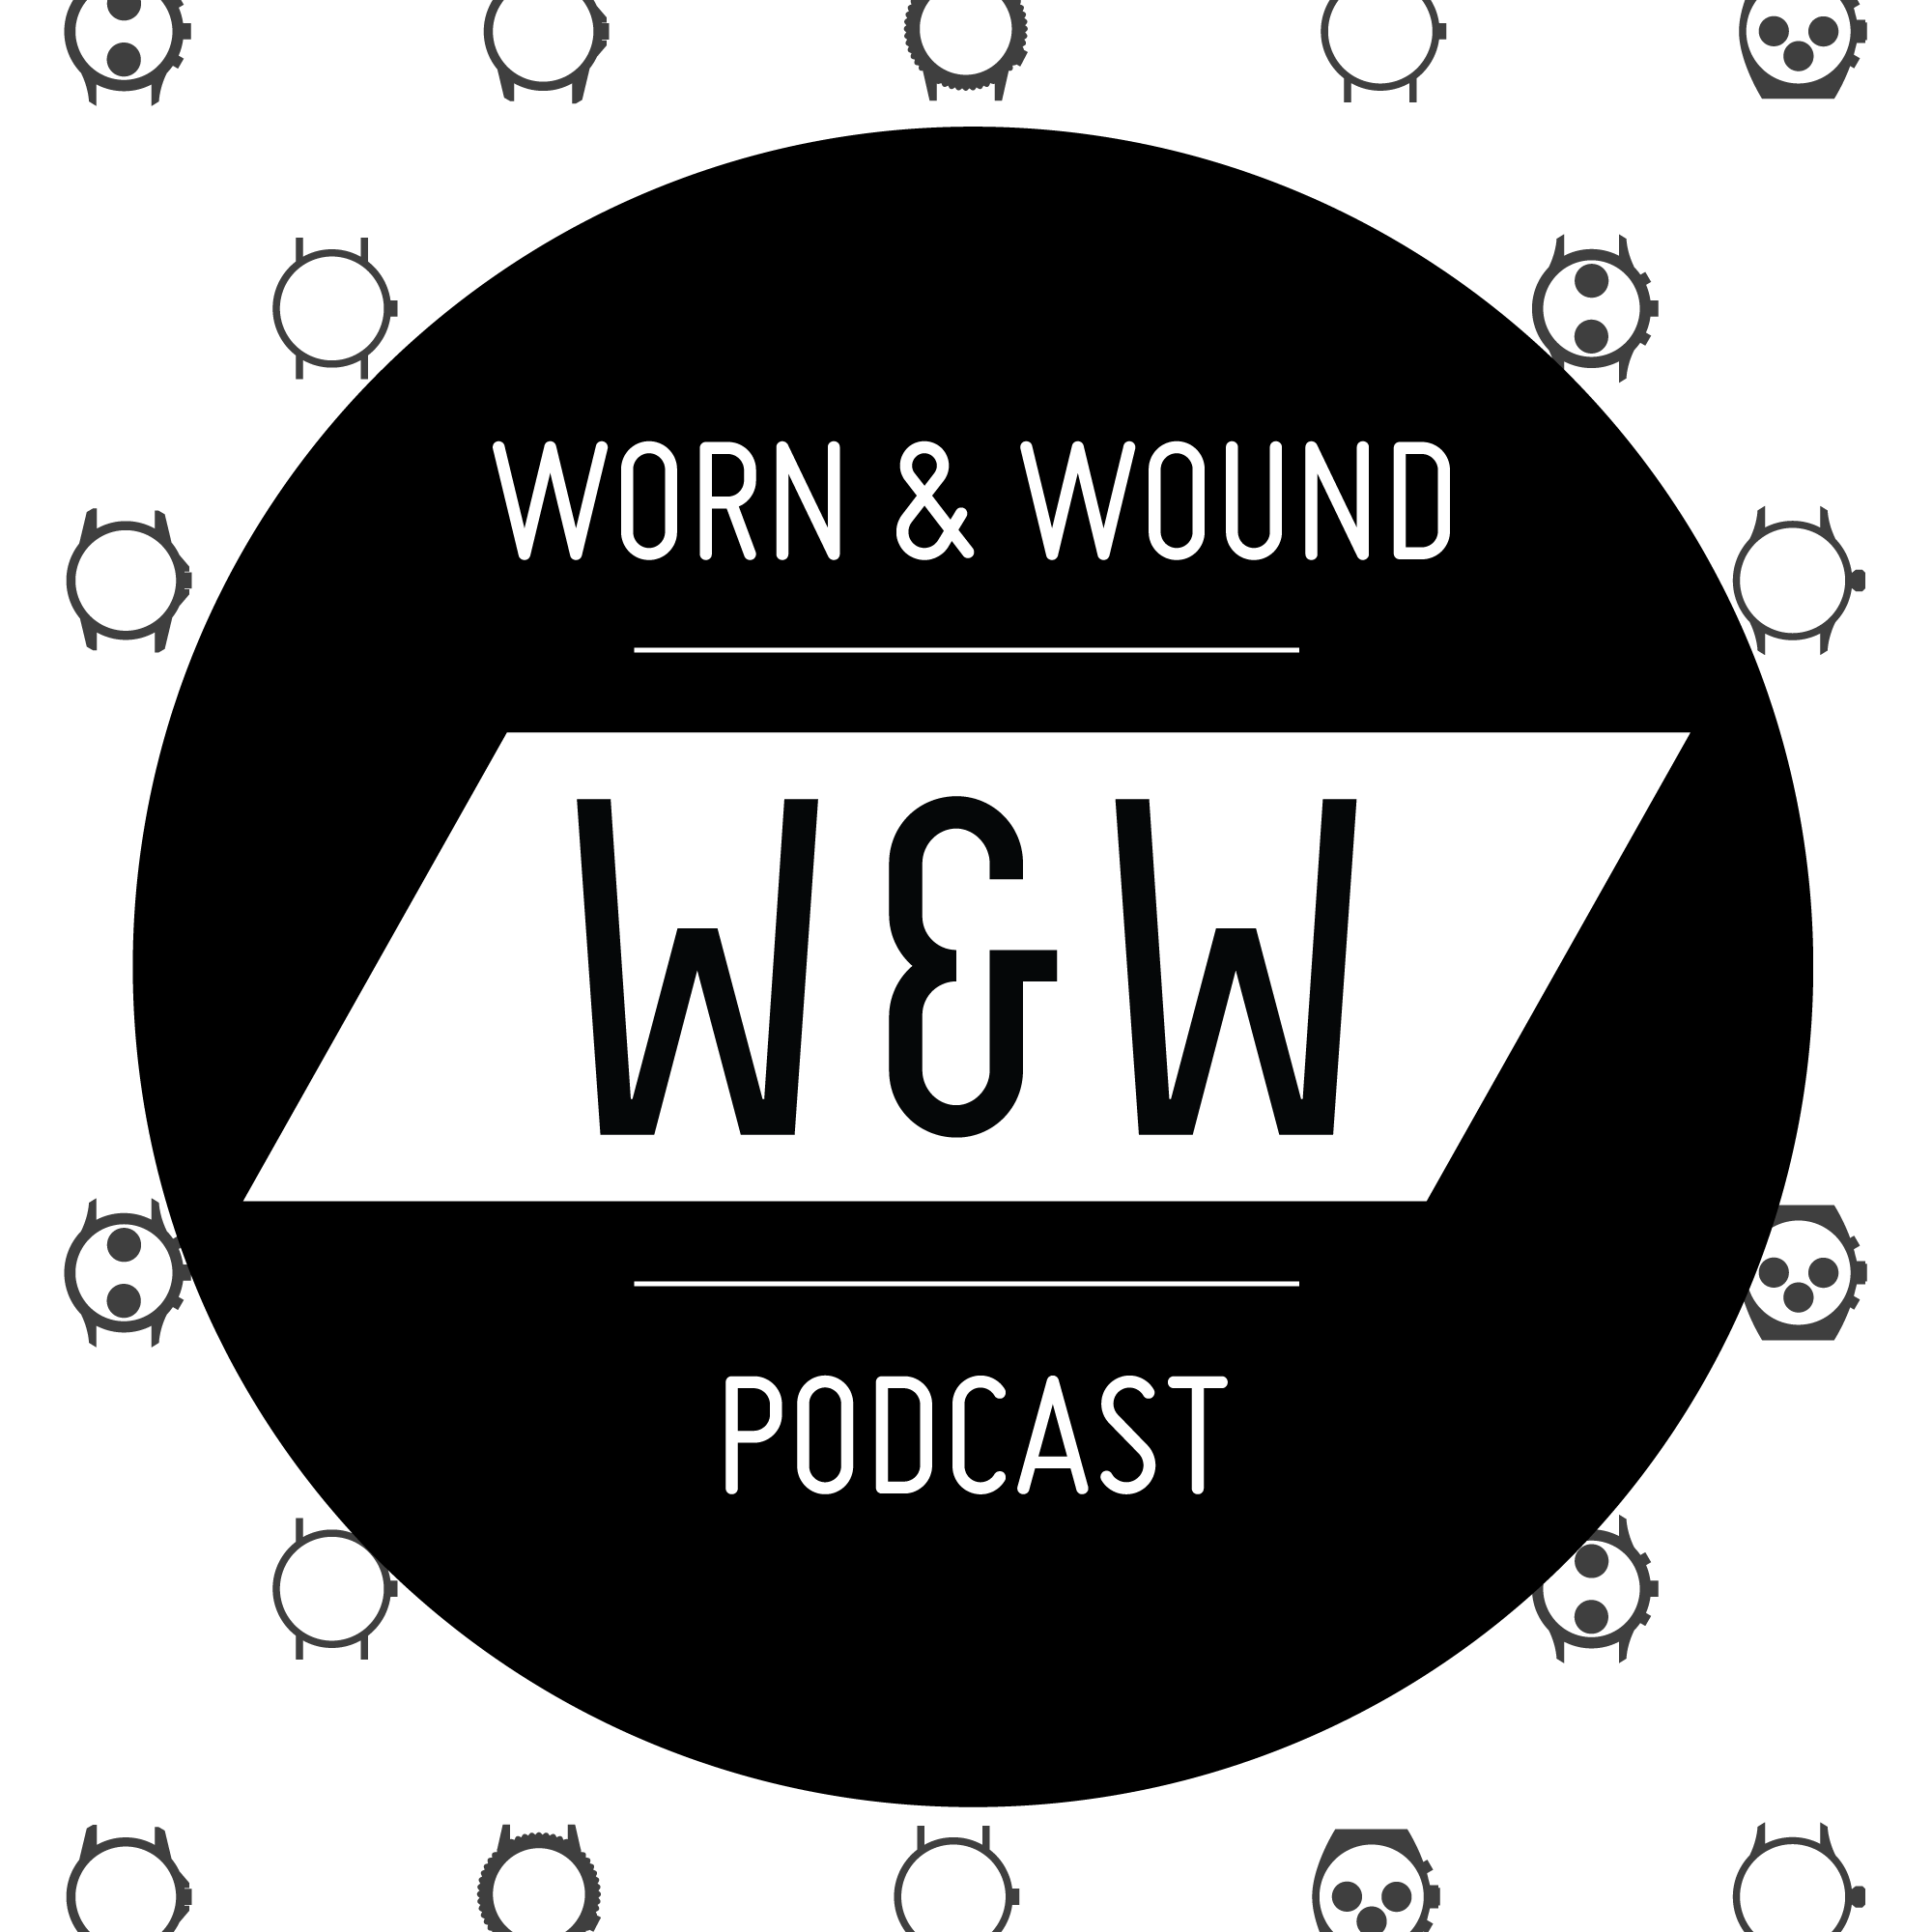 The Worn & Wound Podcast show art